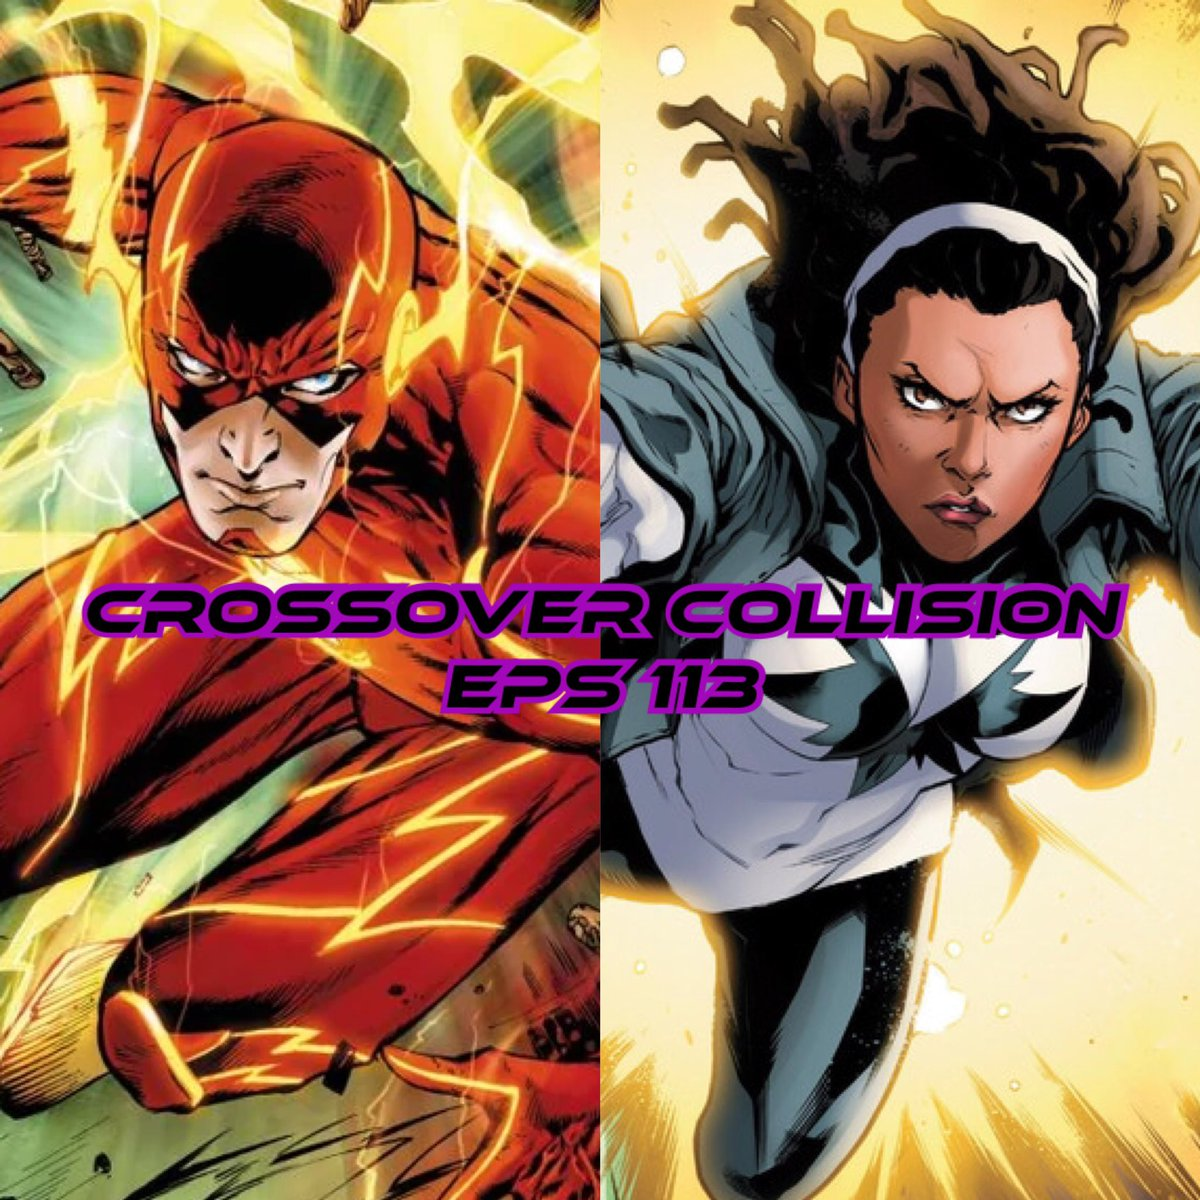 Now that you watched #WandaVision check out Geraldine aka Monica Rambeau as she collides with #TheFlash!  Subscribe to the fictional battle podcast Crossover Collision!  #dccomics #marvelcomics #WandaVision  #JusticeLeague #mcu #avengers #MCU   Listen here